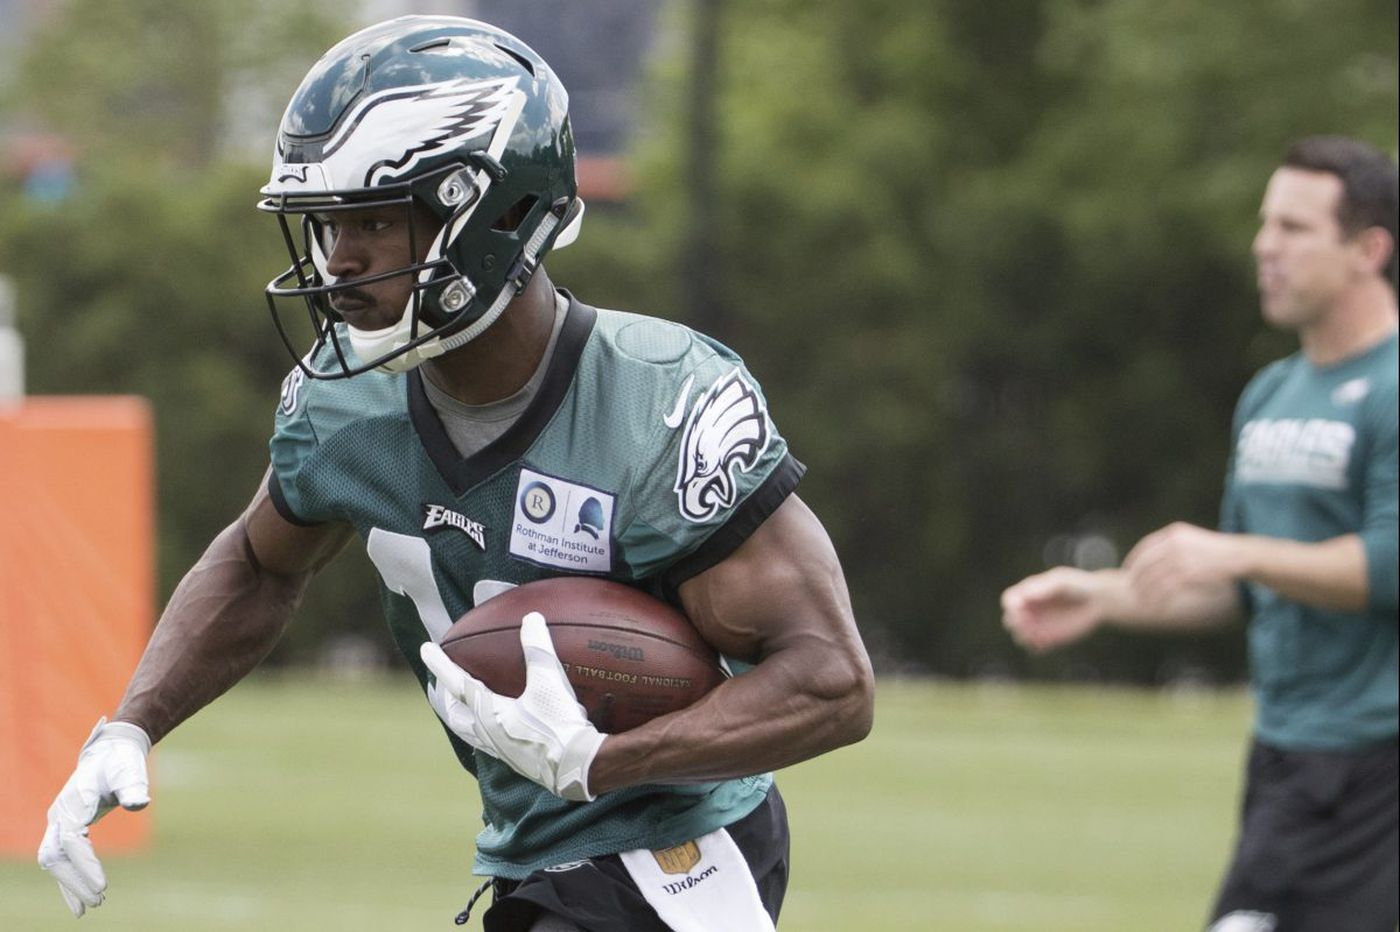 Radnor's Tim Wilson makes Eagles' spring roster after rookie-camp tryout